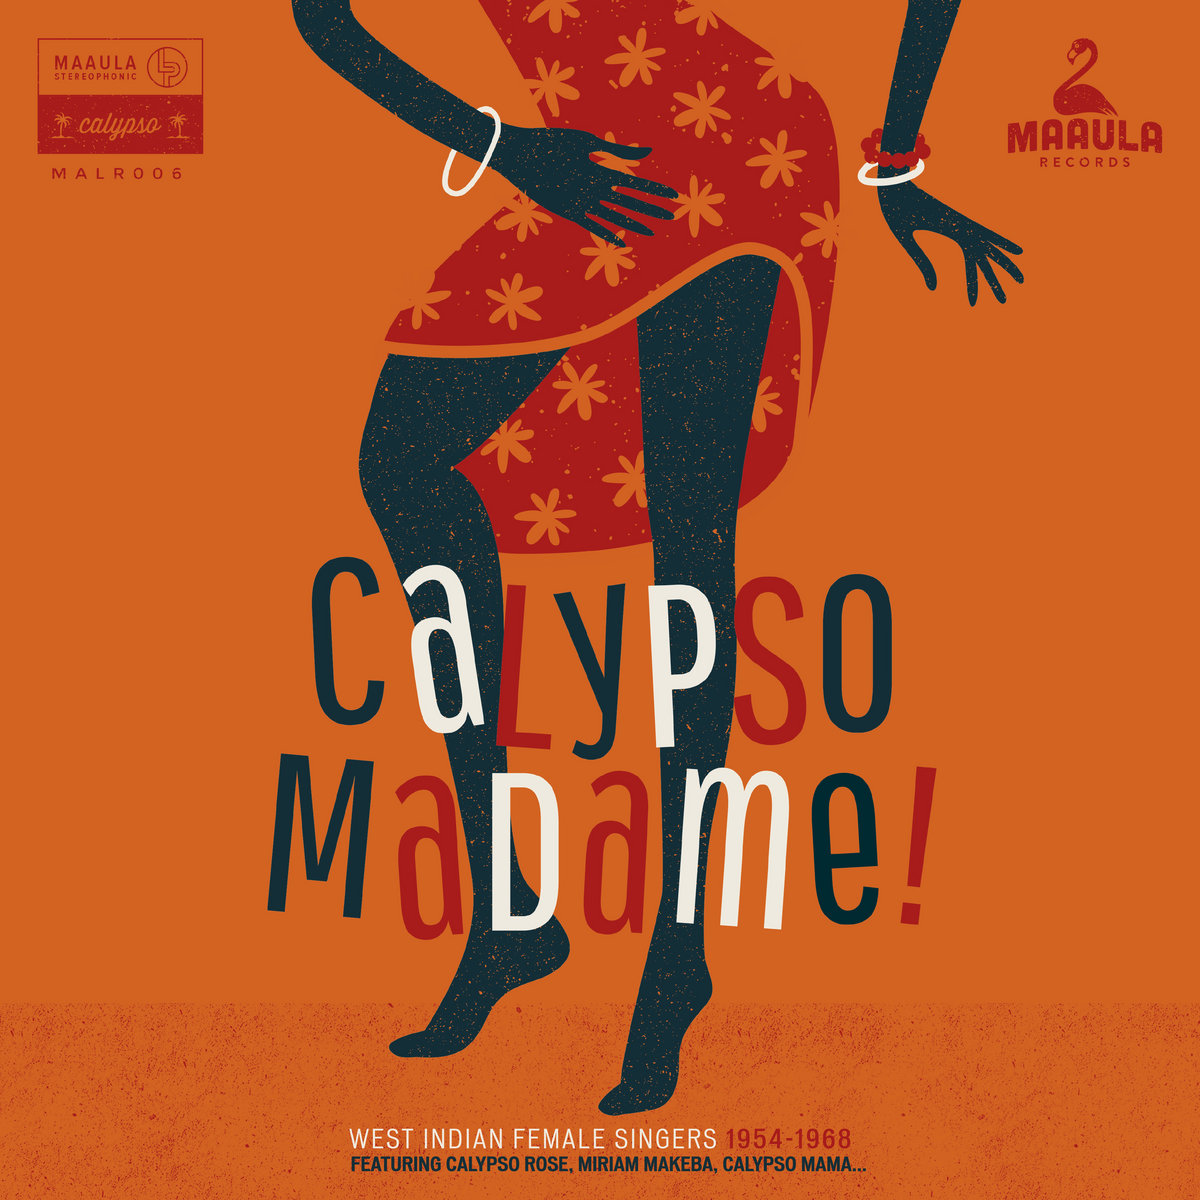 Calypso Madame ! - West Indian female singers 1954-68 | MaAuLa Records